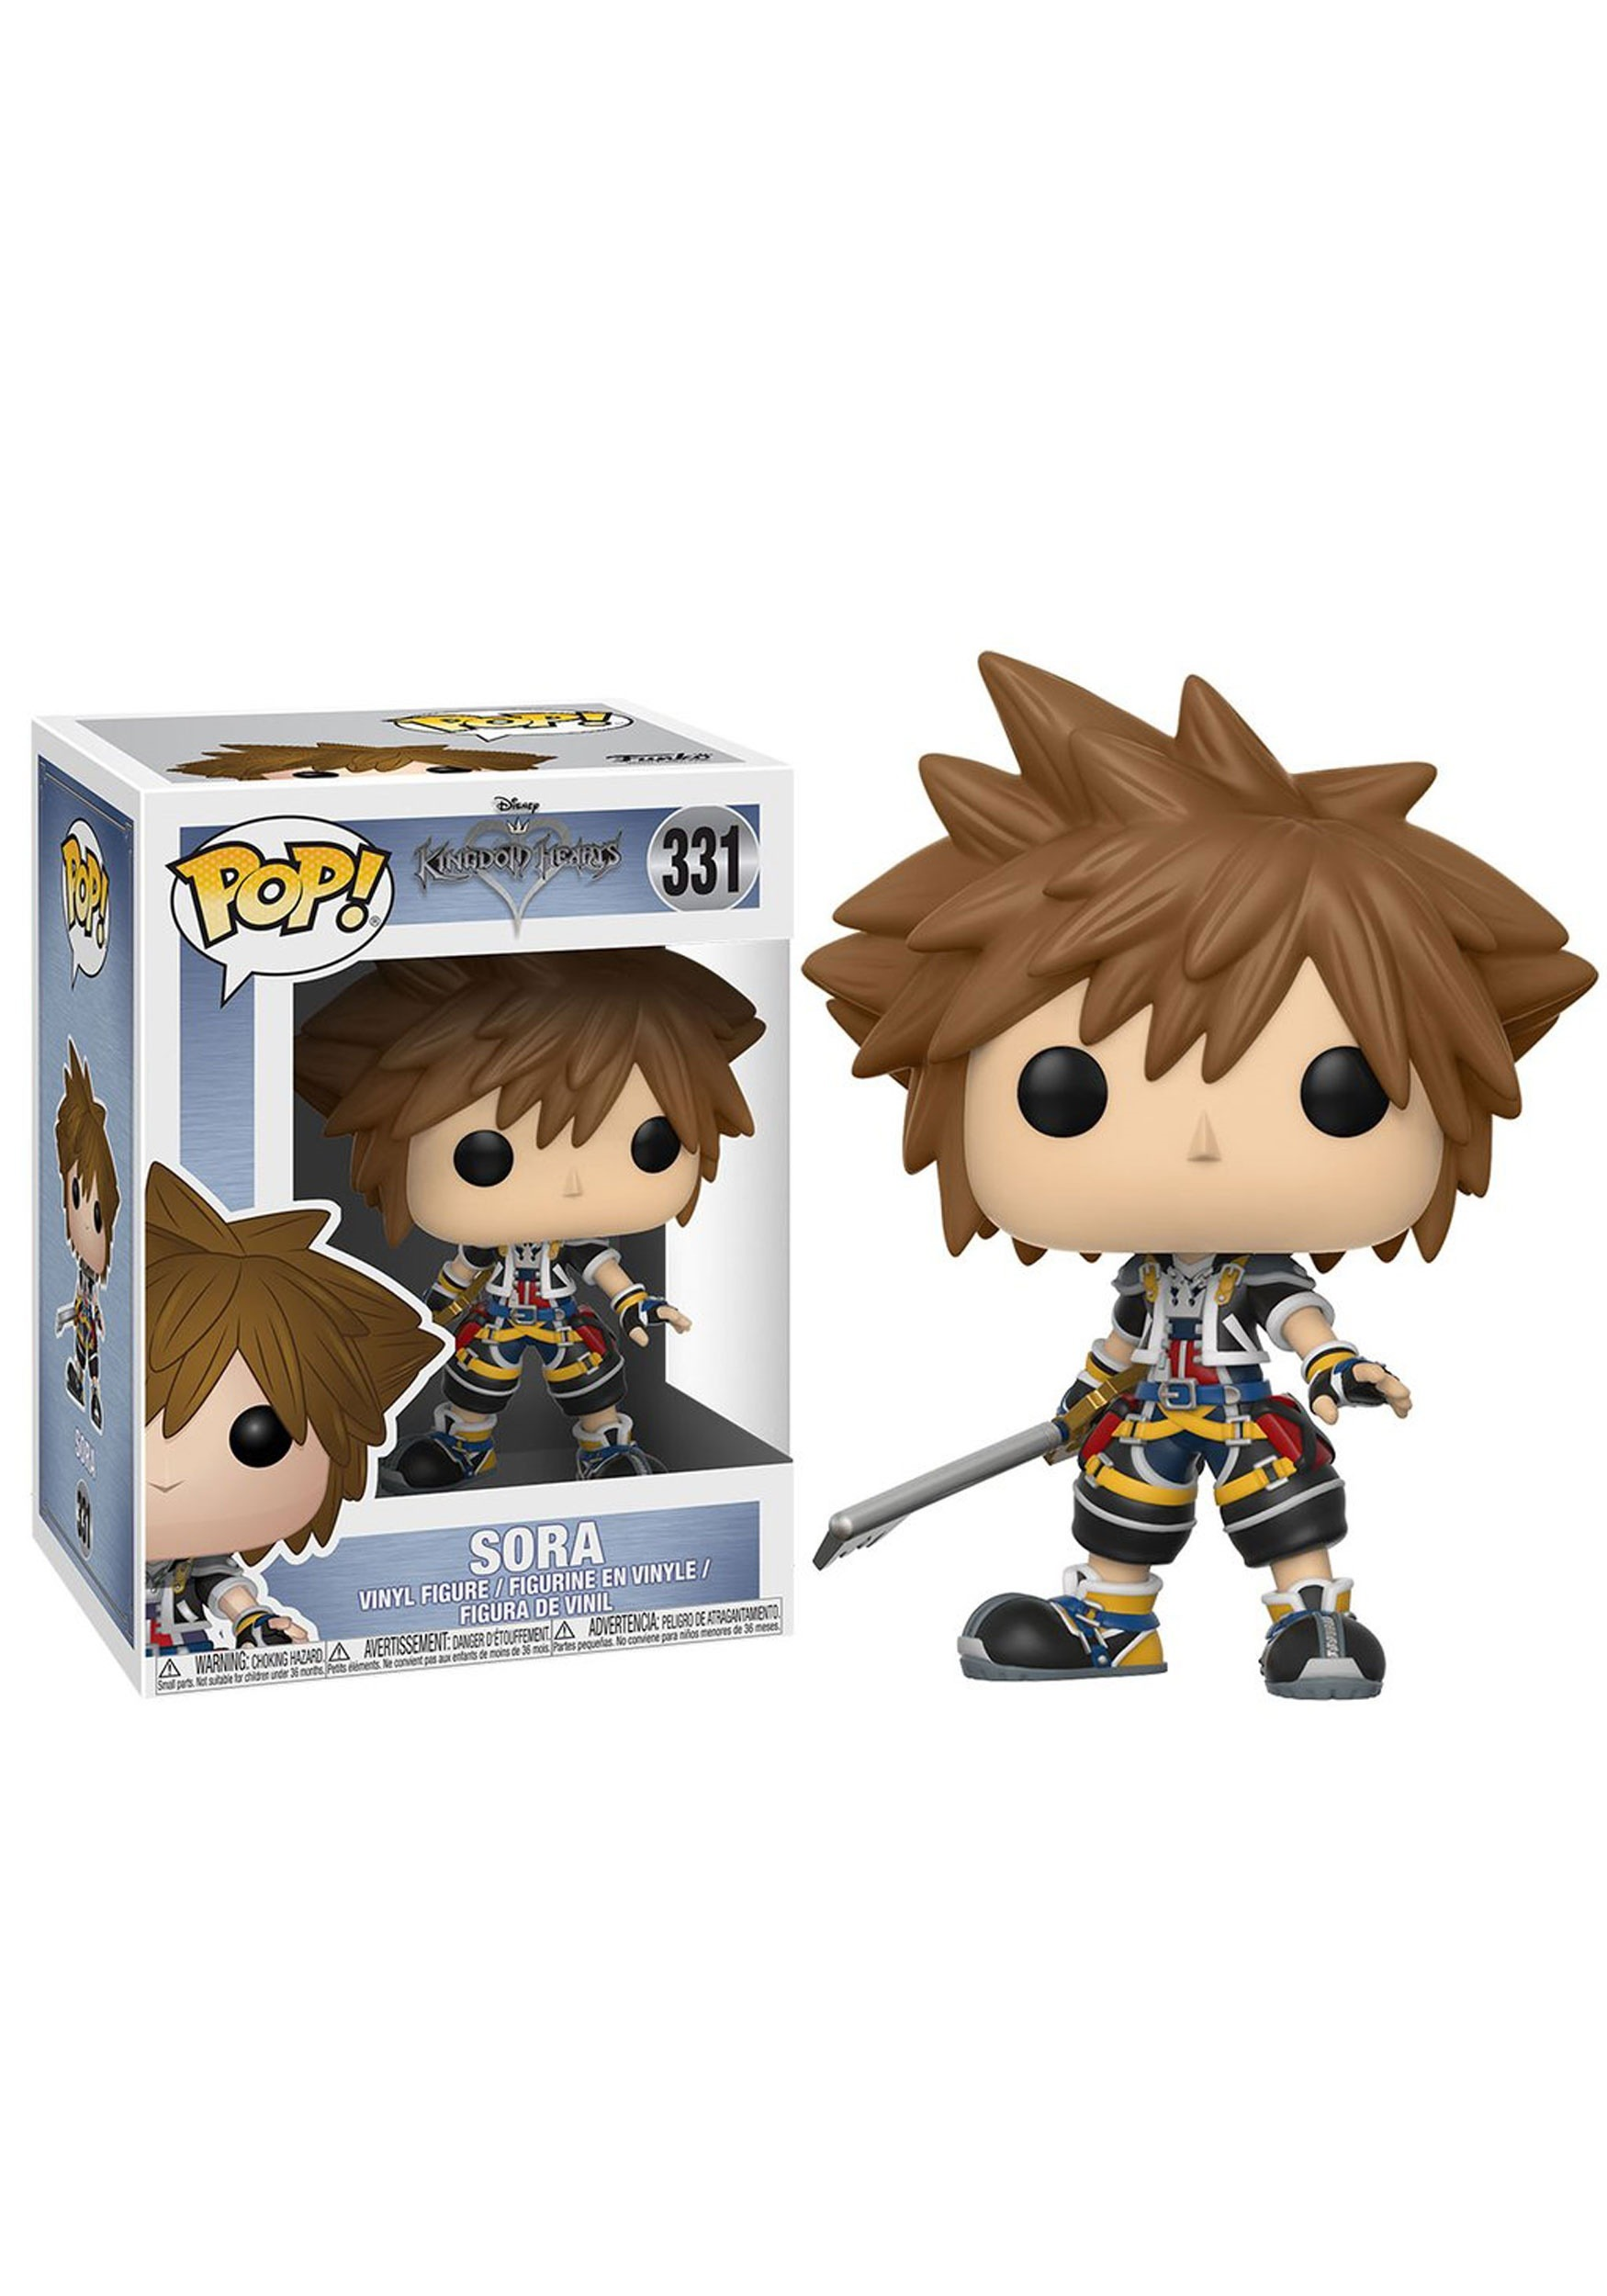 Nightmare Before Christmas Sora.Pop Disney Kingdom Hearts Sora Vinyl Figure